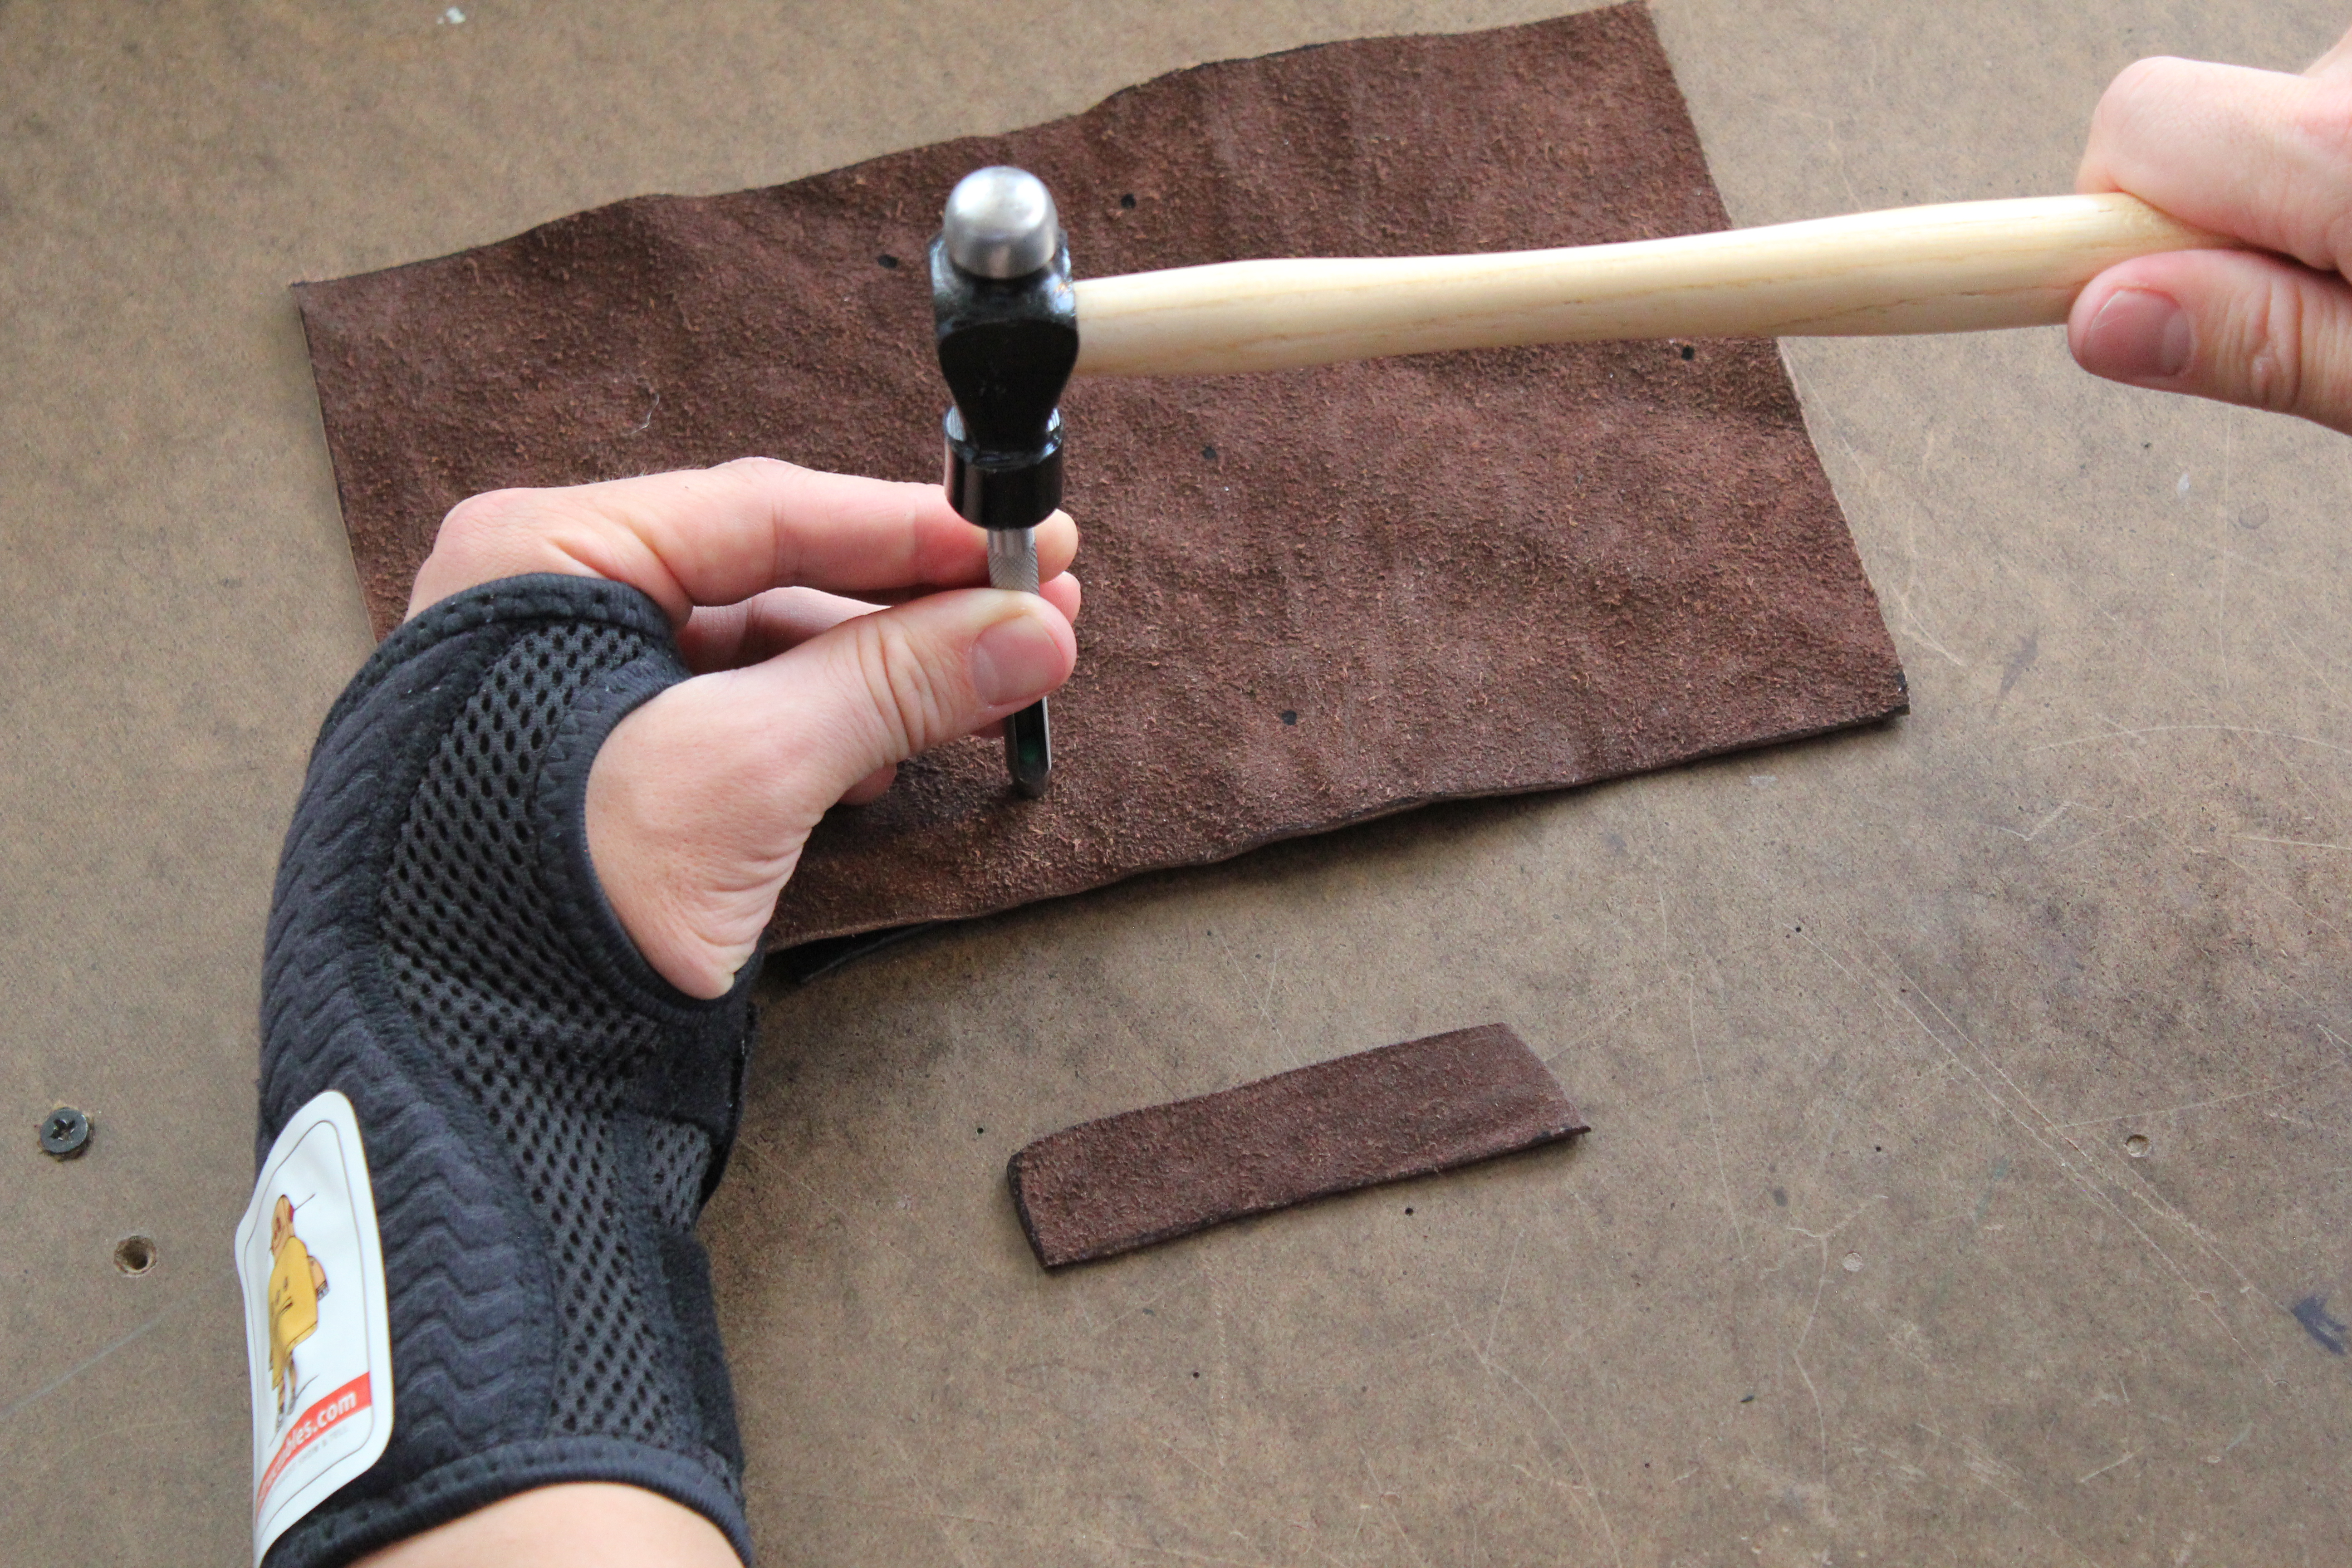 Picture of Cut Leather and Punch Holes